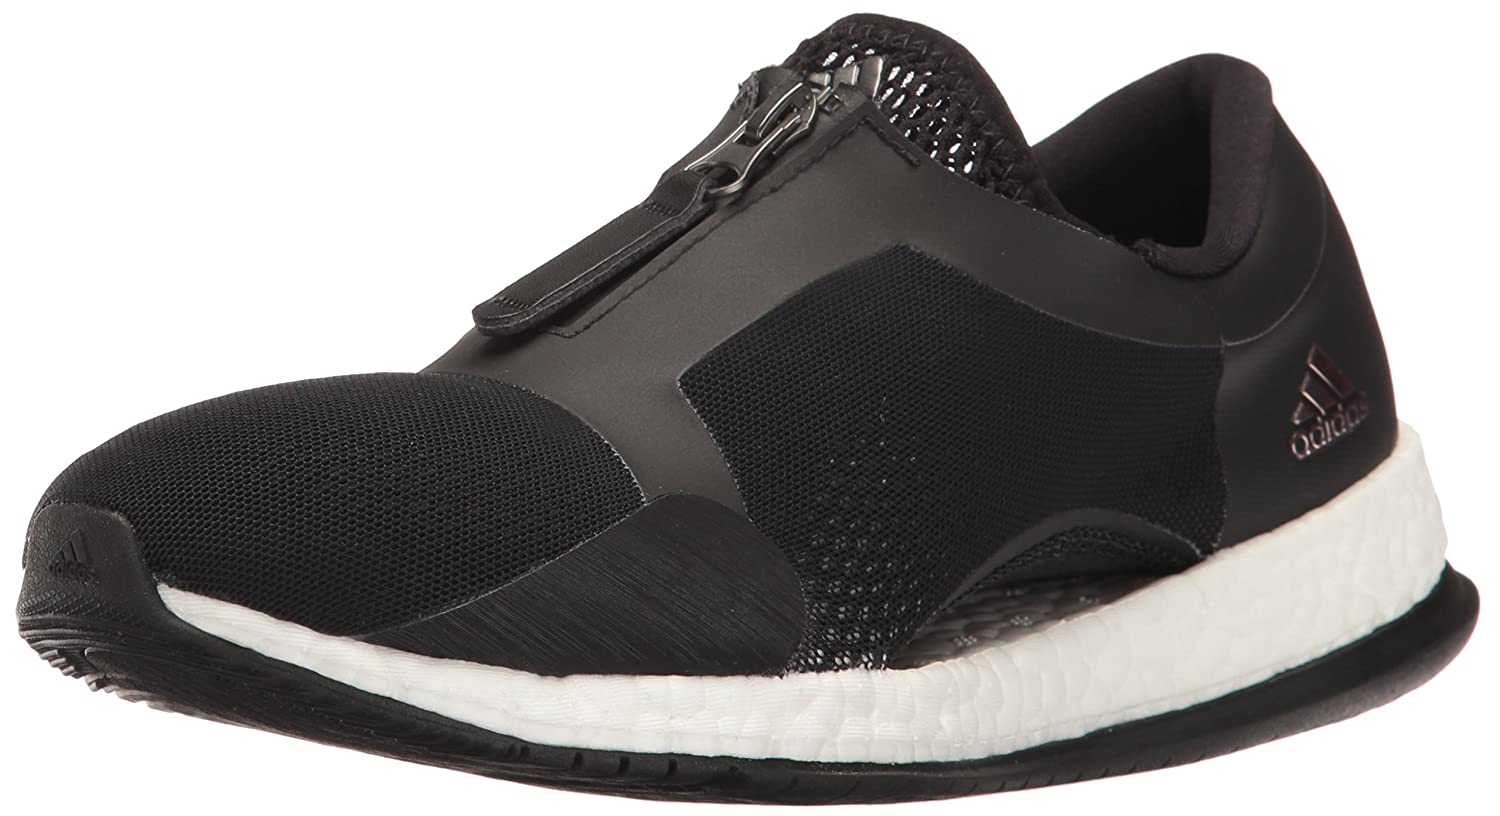 Adidas Pure Boost X Trainer Zip Shoes BB1578 Compare